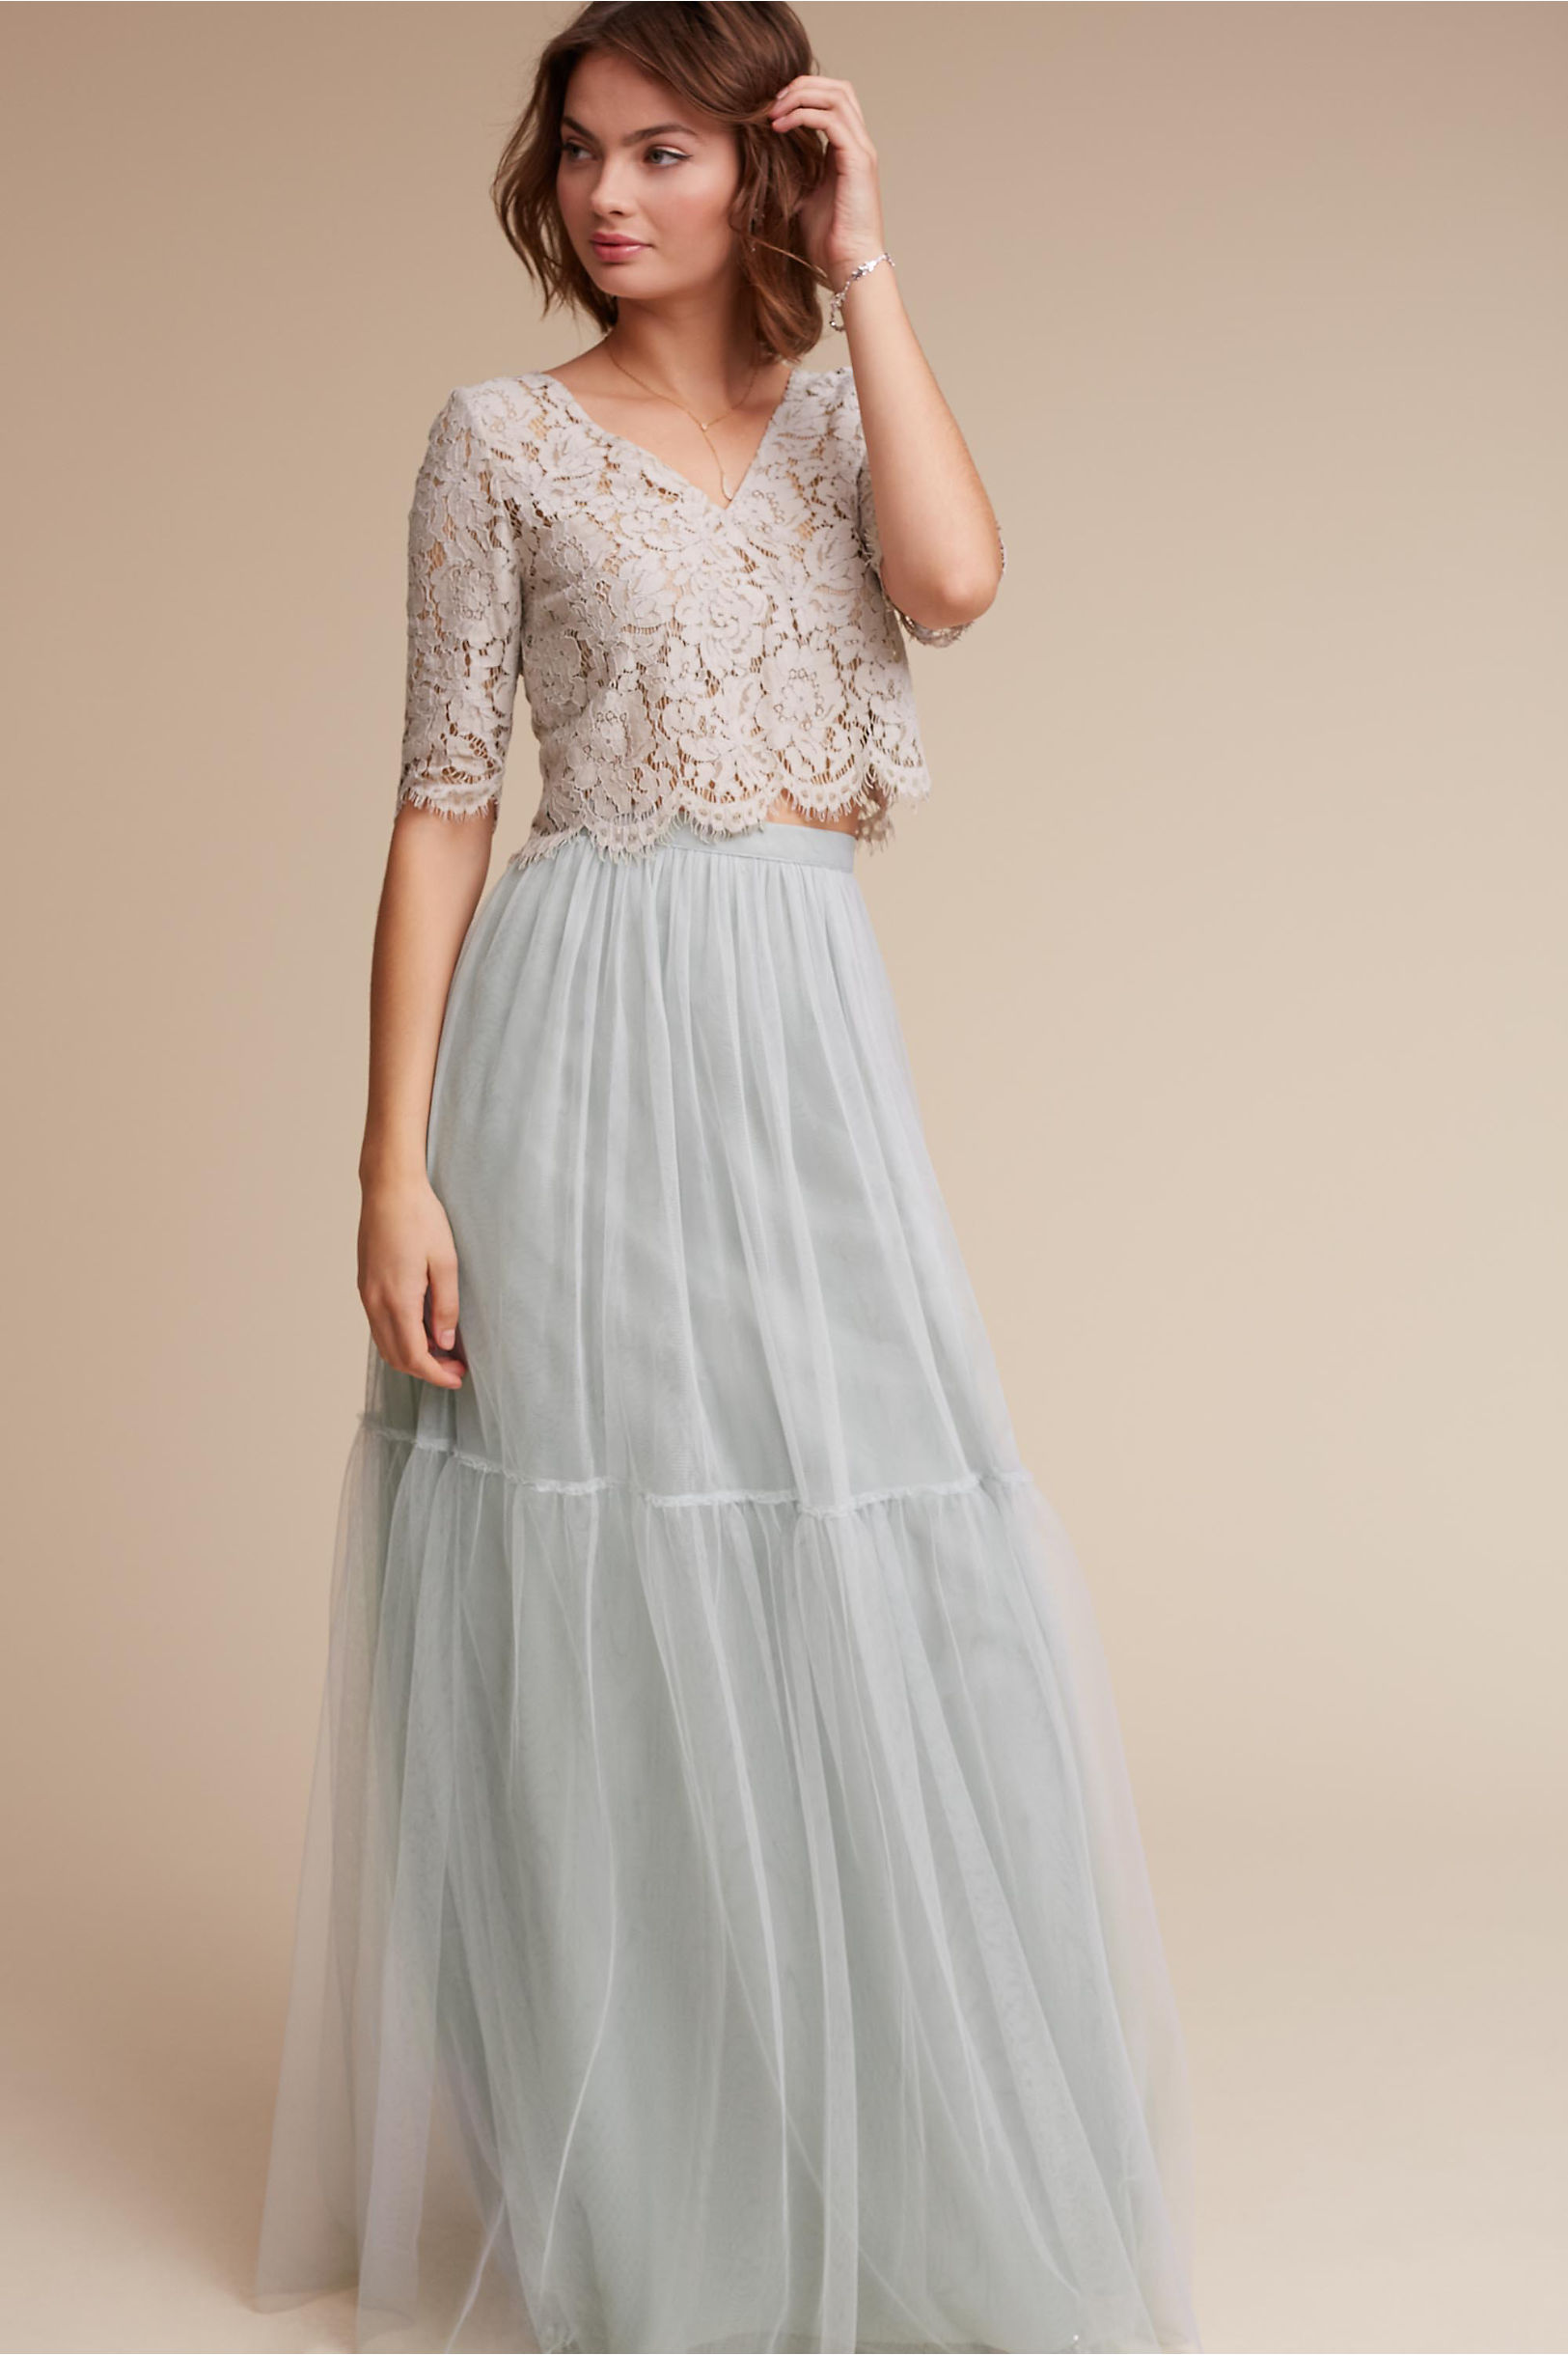 peony blue light vow amsale to front be dress dresses bridesmaid movement chic drew lighting by nouvelle